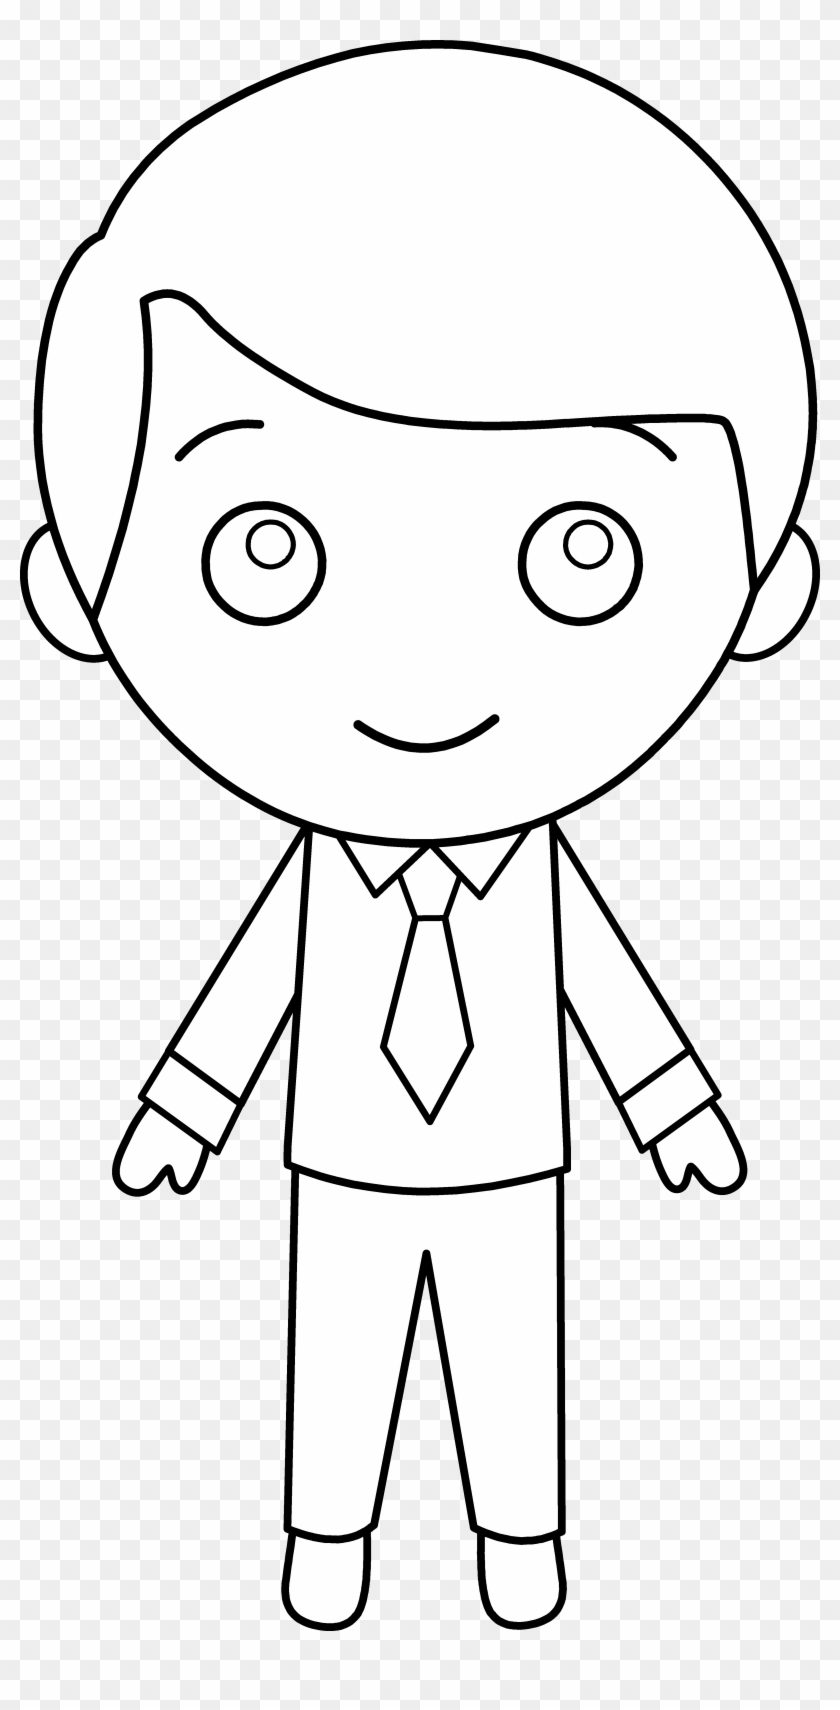 Wear A Suit Handsome Guy Mature Man Taste, Formal Wear, Business Attire,  Workwear PNG Transparent Clipart Image and PSD File for Free Download